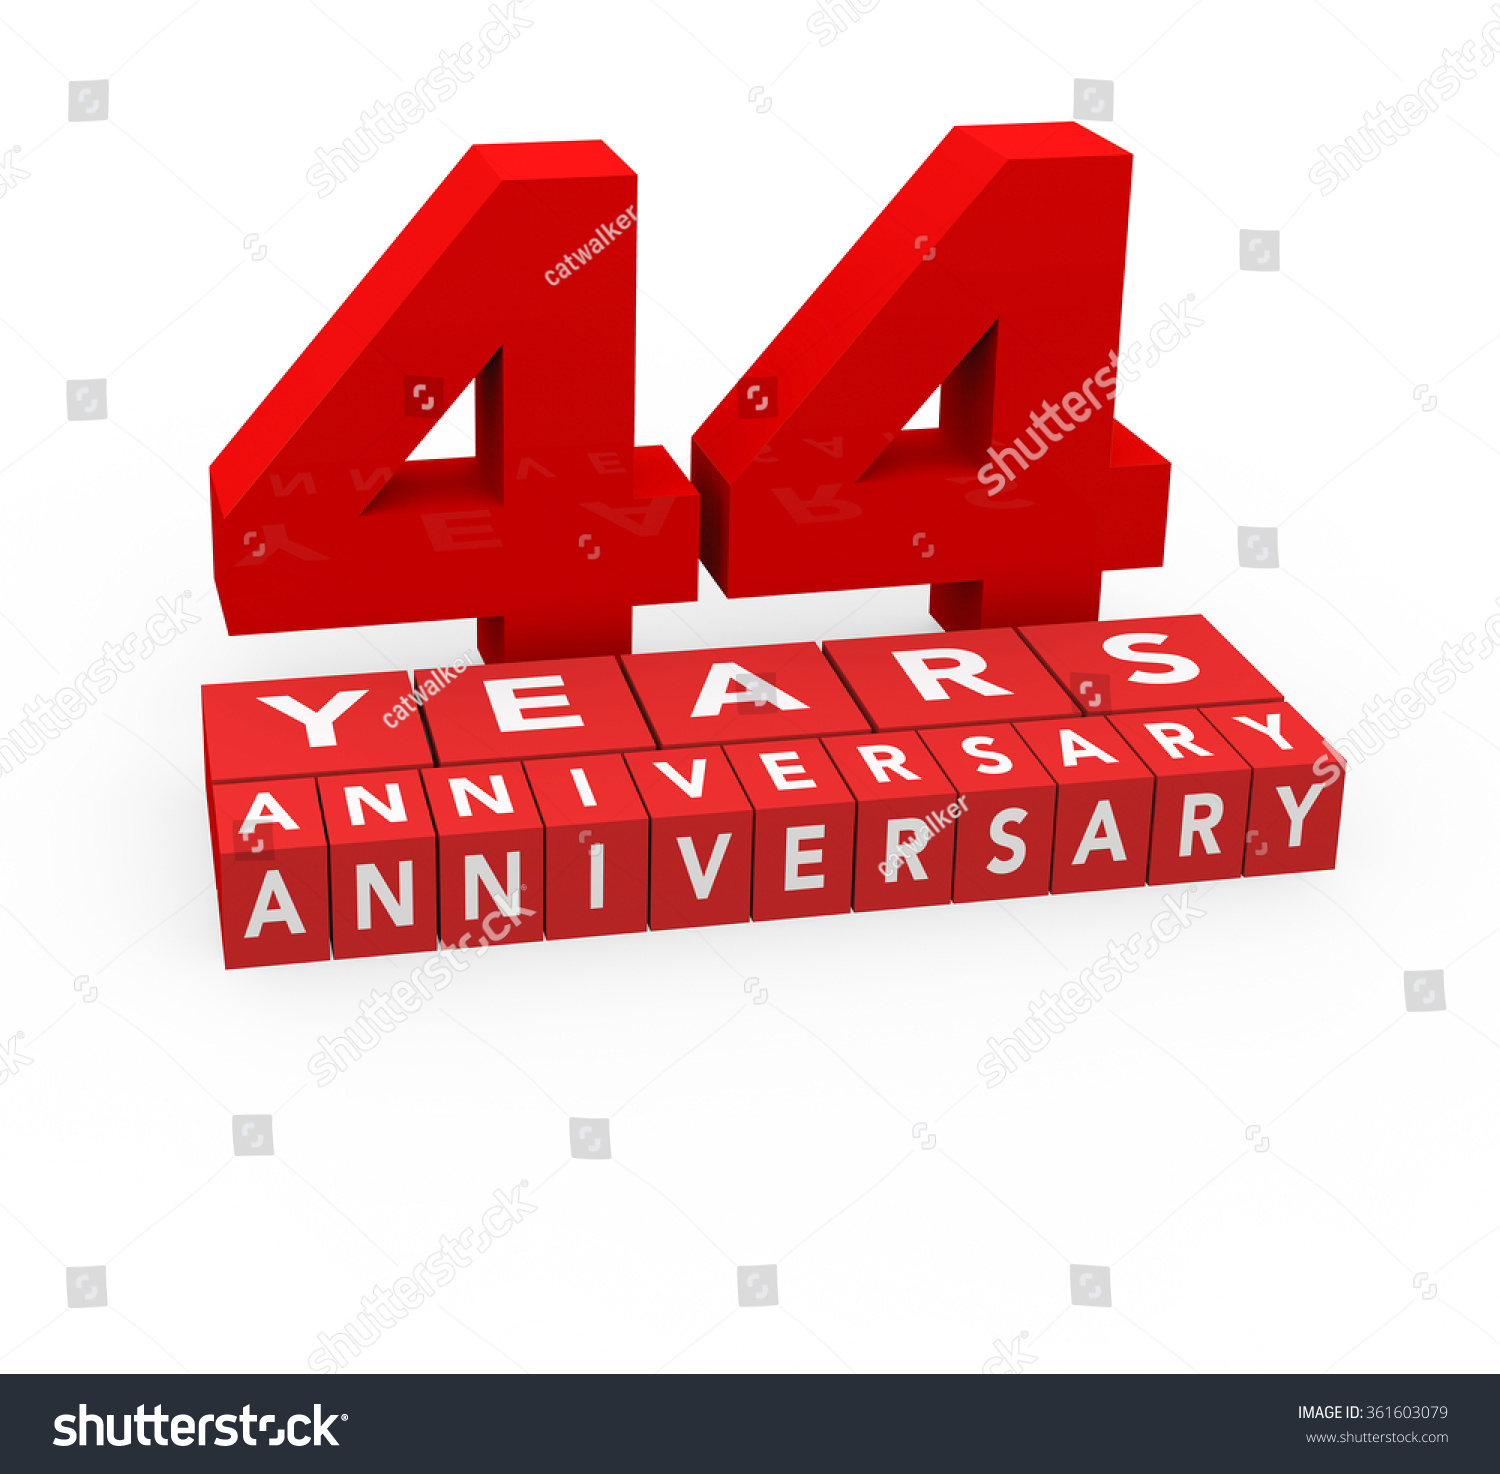 Royalty free 3d render 44 years anniversary on a 361603079 stock 3d render 44 years anniversary on a white background 361603079 biocorpaavc Gallery